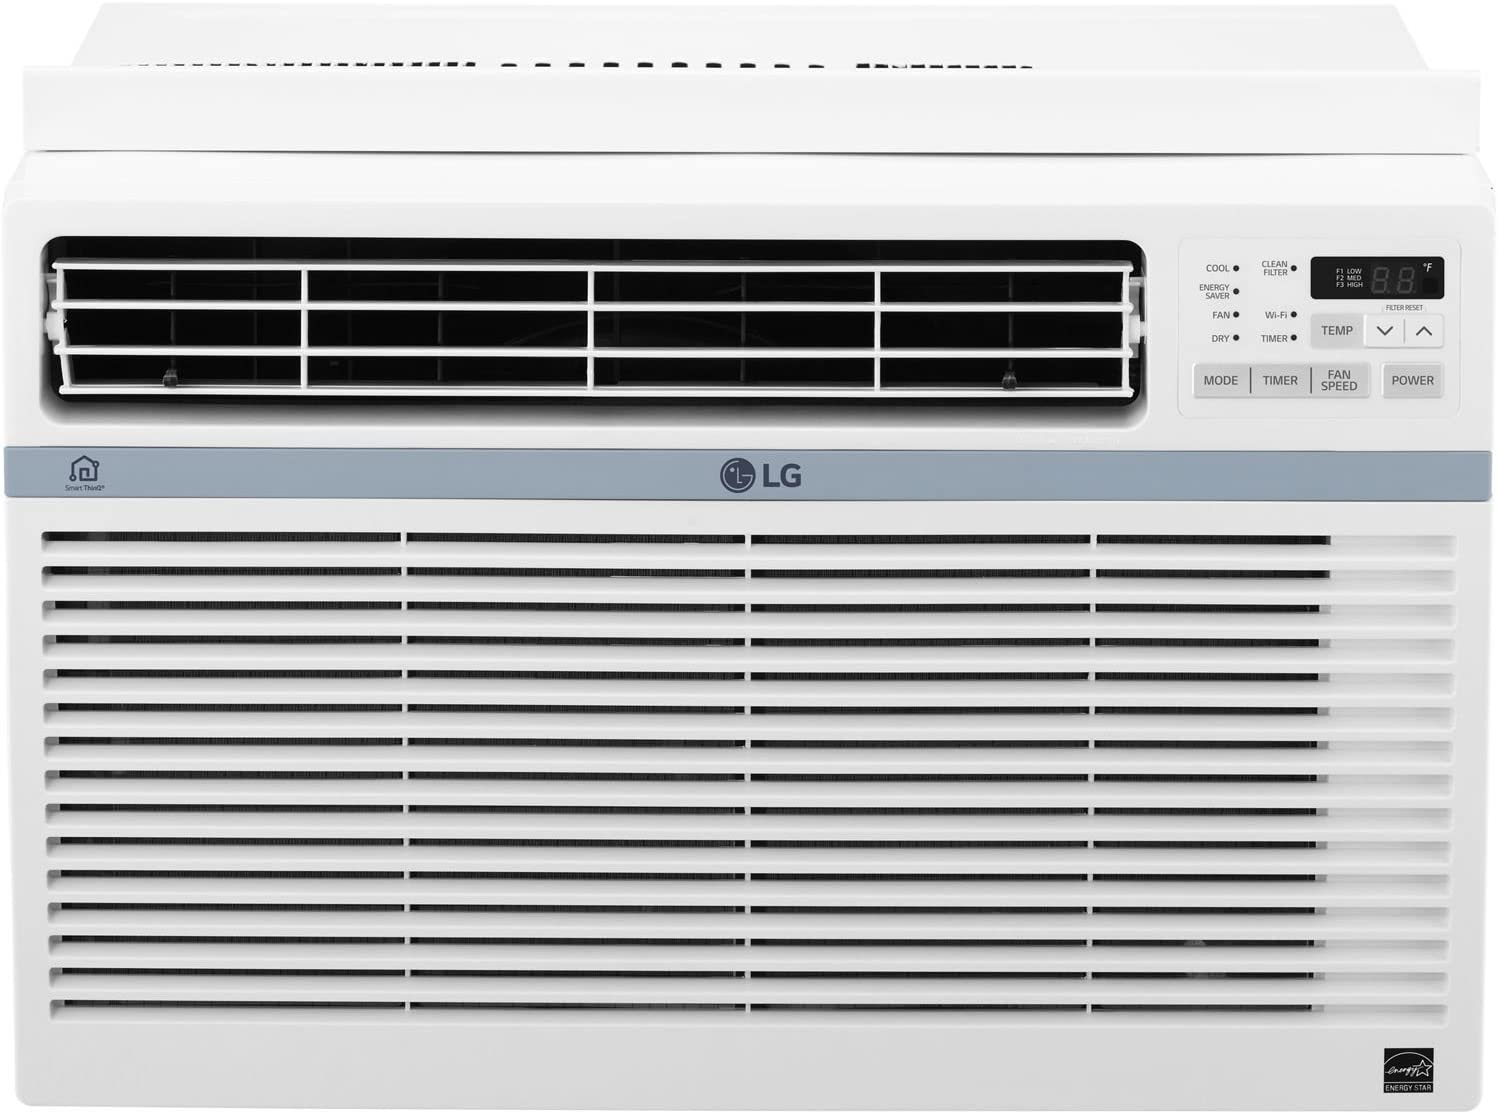 LG Quiet Window Air Conditioners